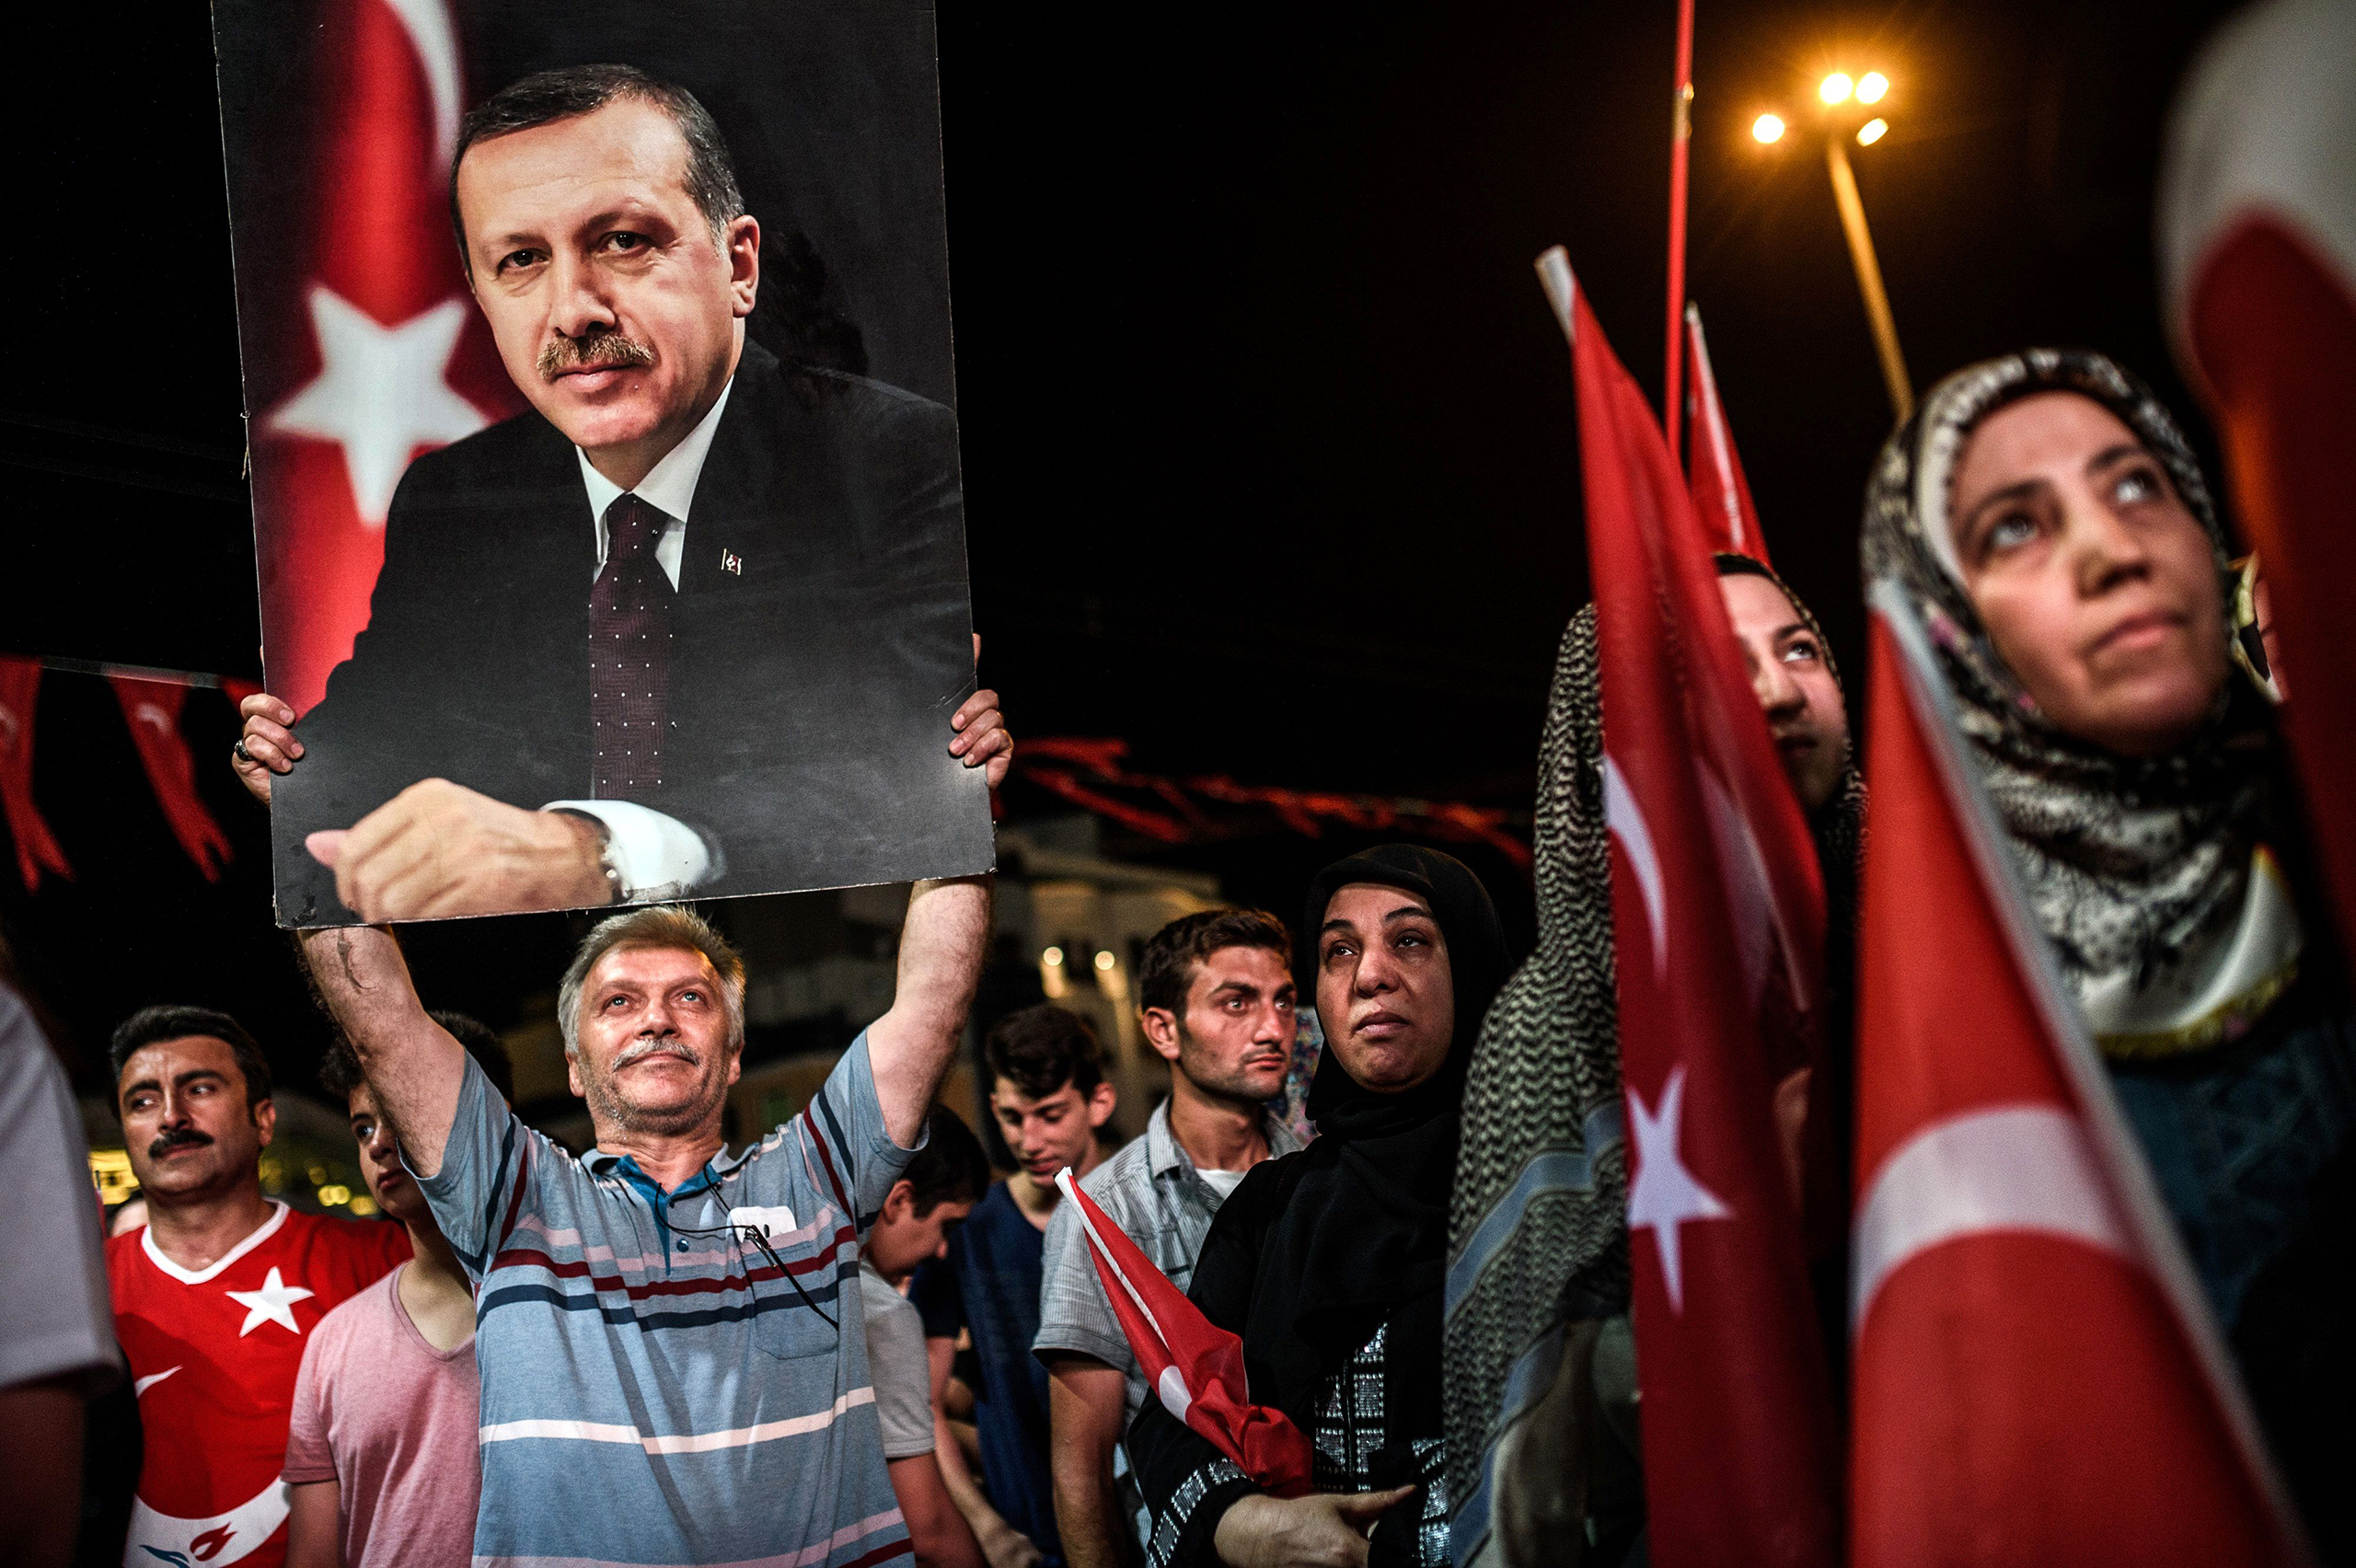 A man holds up a photo of Turkey's President Recep Tayyip Erdogan during a pro-Erdogan rally in Taksim Square in Istanbul on July 22, 2016.